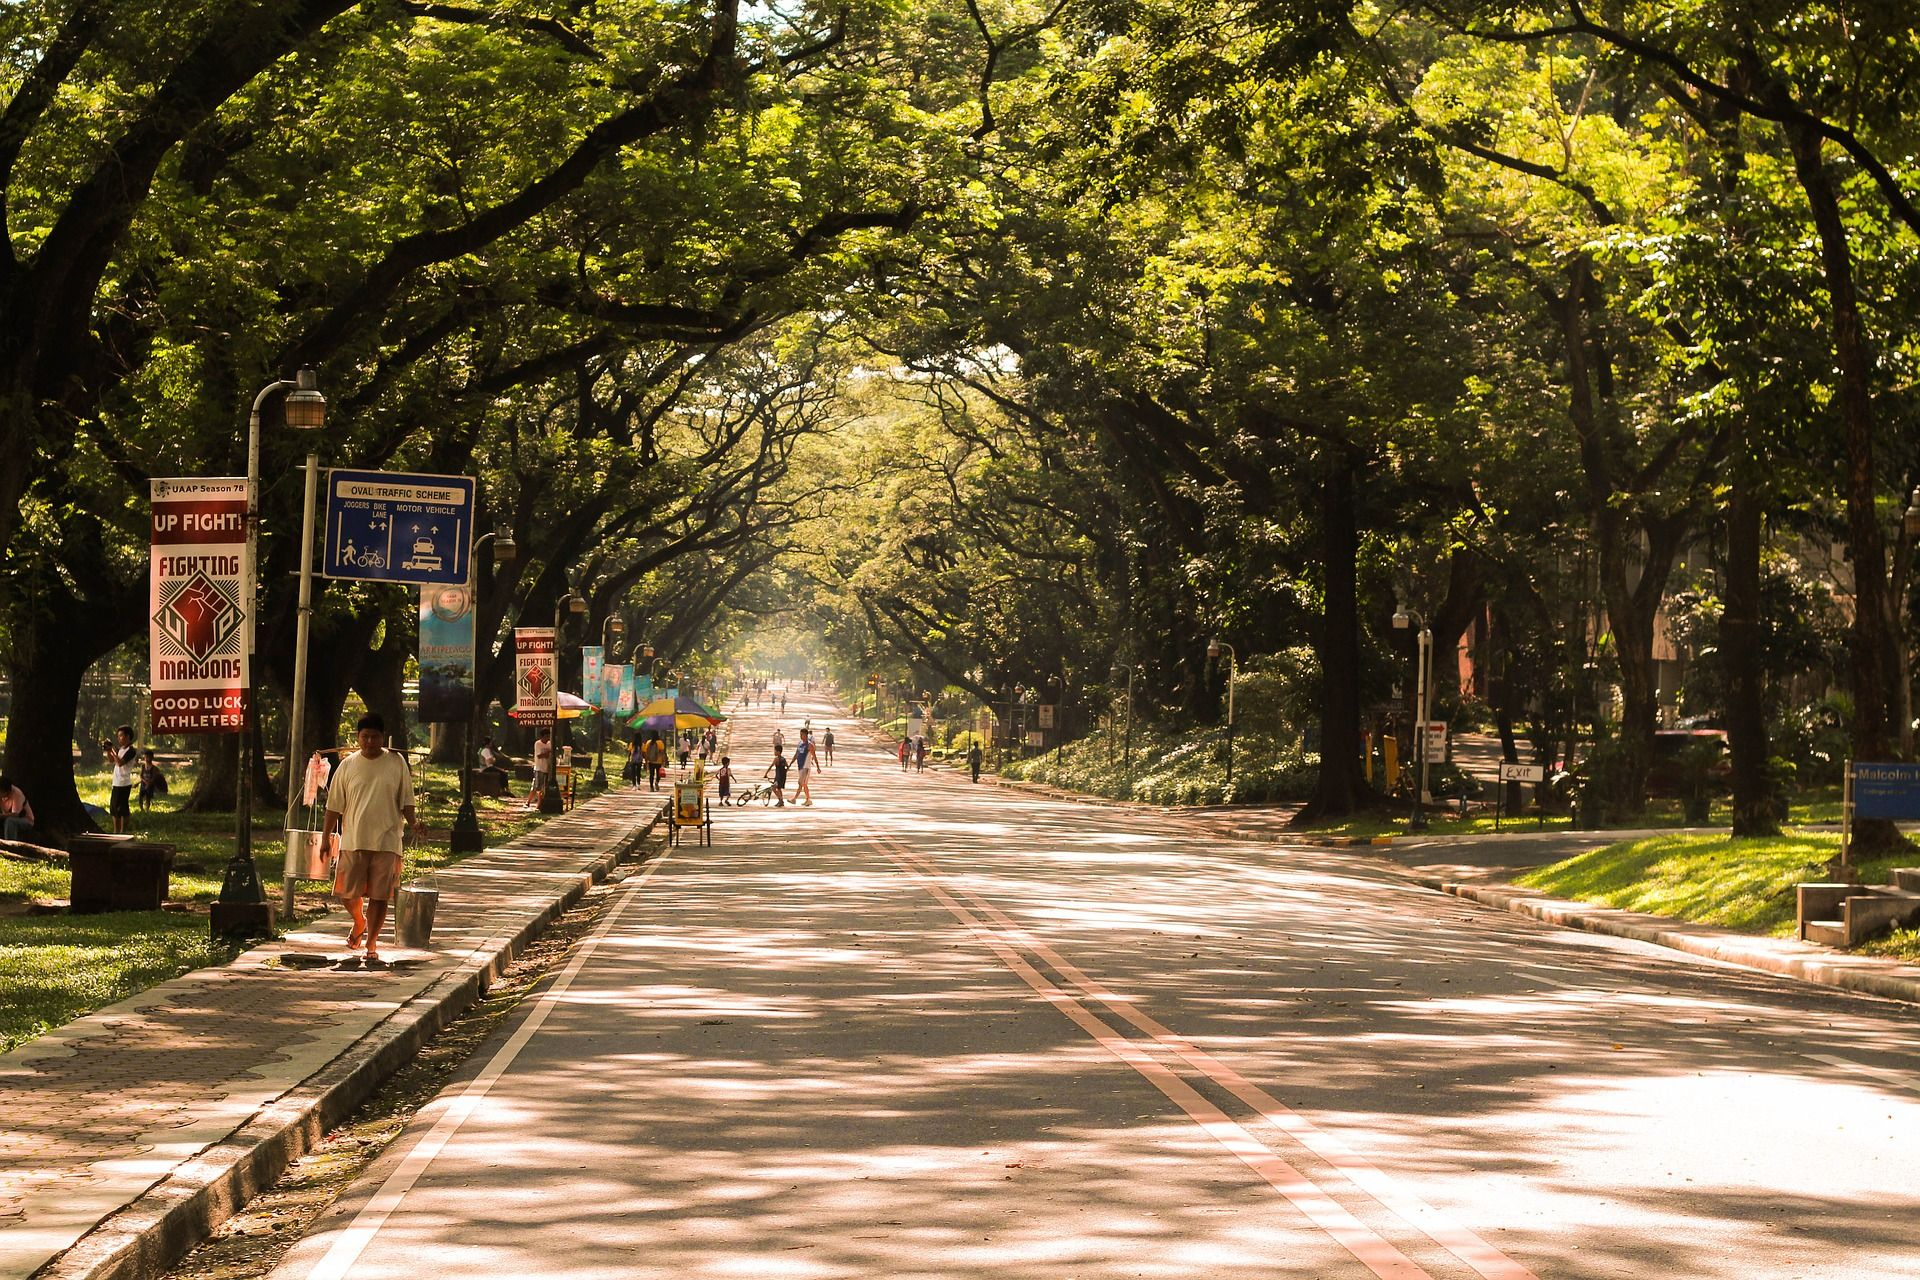 Pedestrians walk along a tree-lined street in Manila in the Philippines.